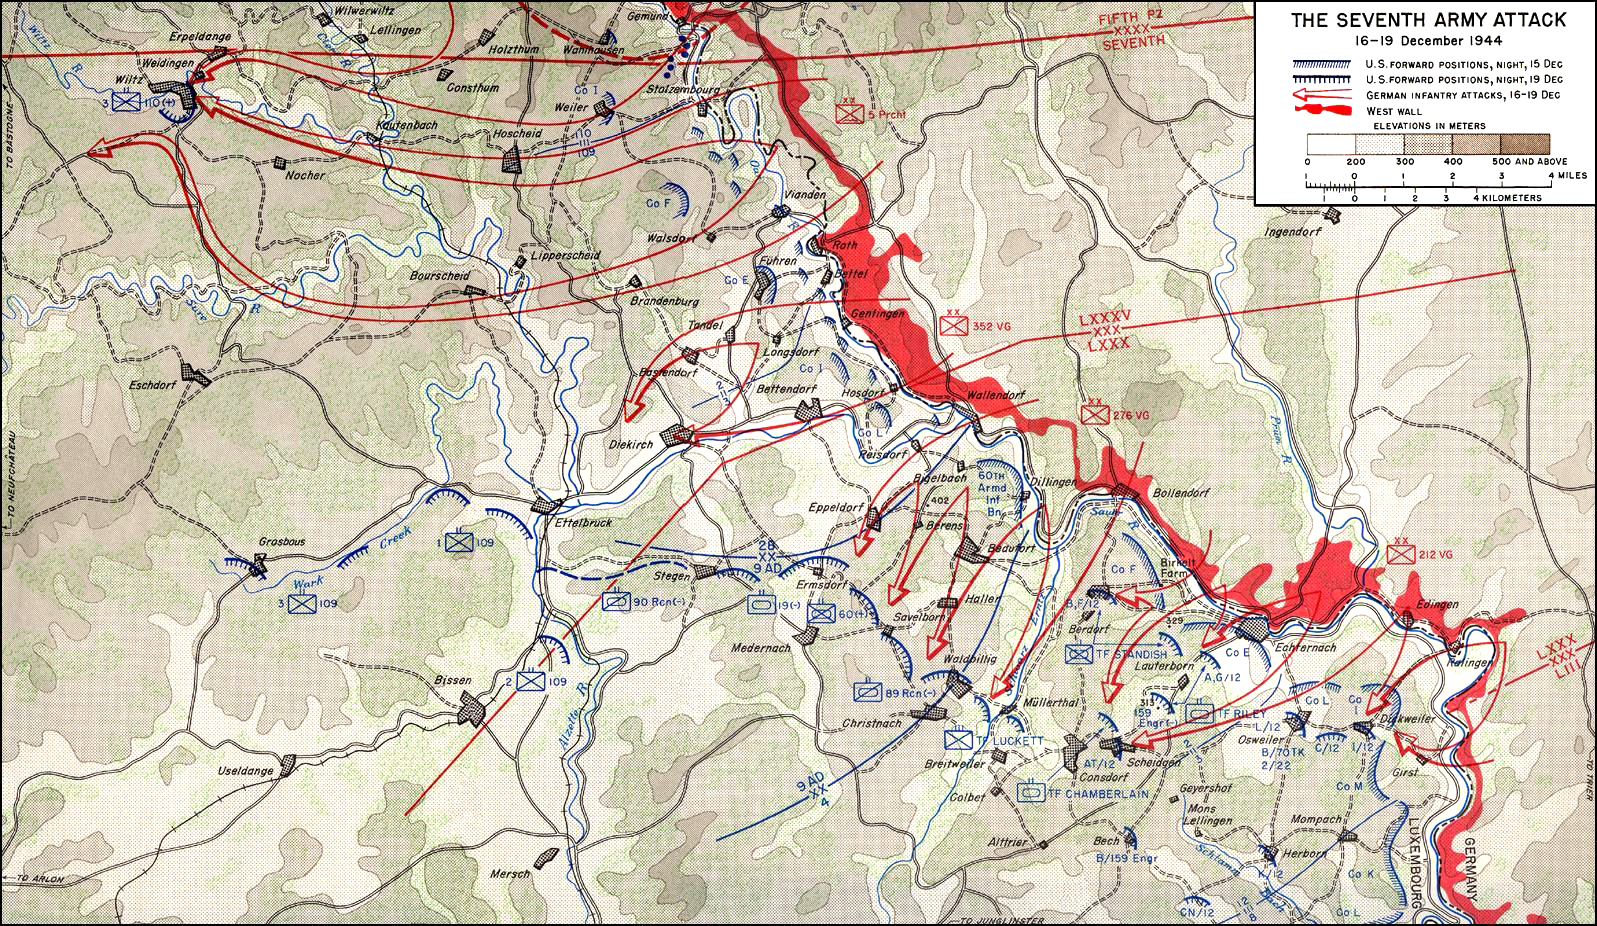 The ardennes battle of the bulge contents v the seventh army attack 16 19 december 1944 gumiabroncs Choice Image